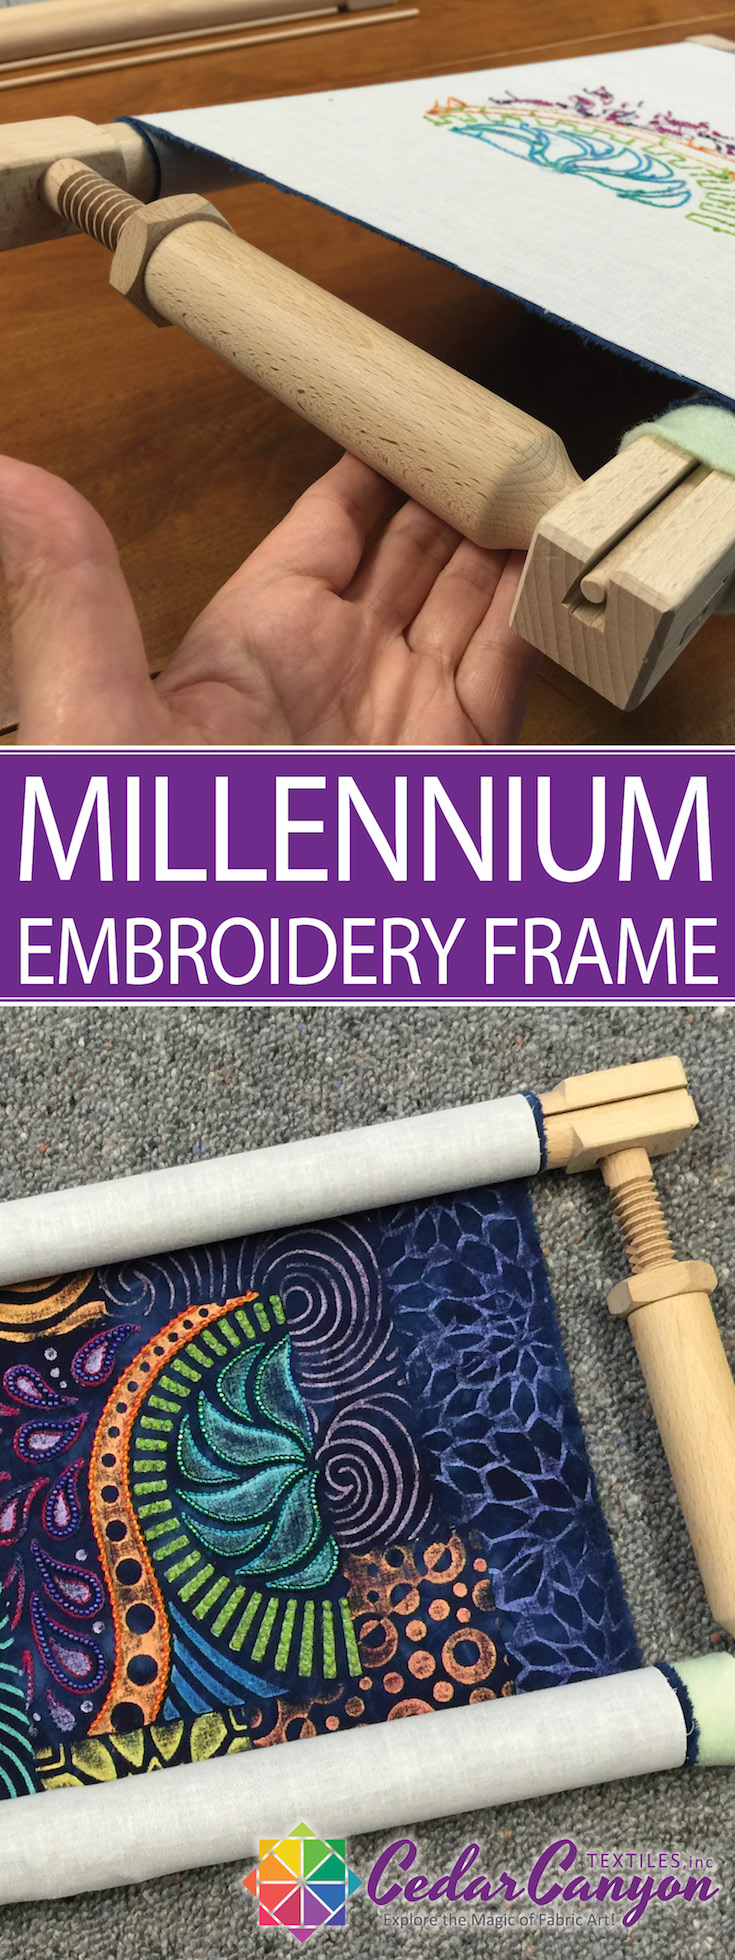 Millennium-Embroidery-Frame-PIN